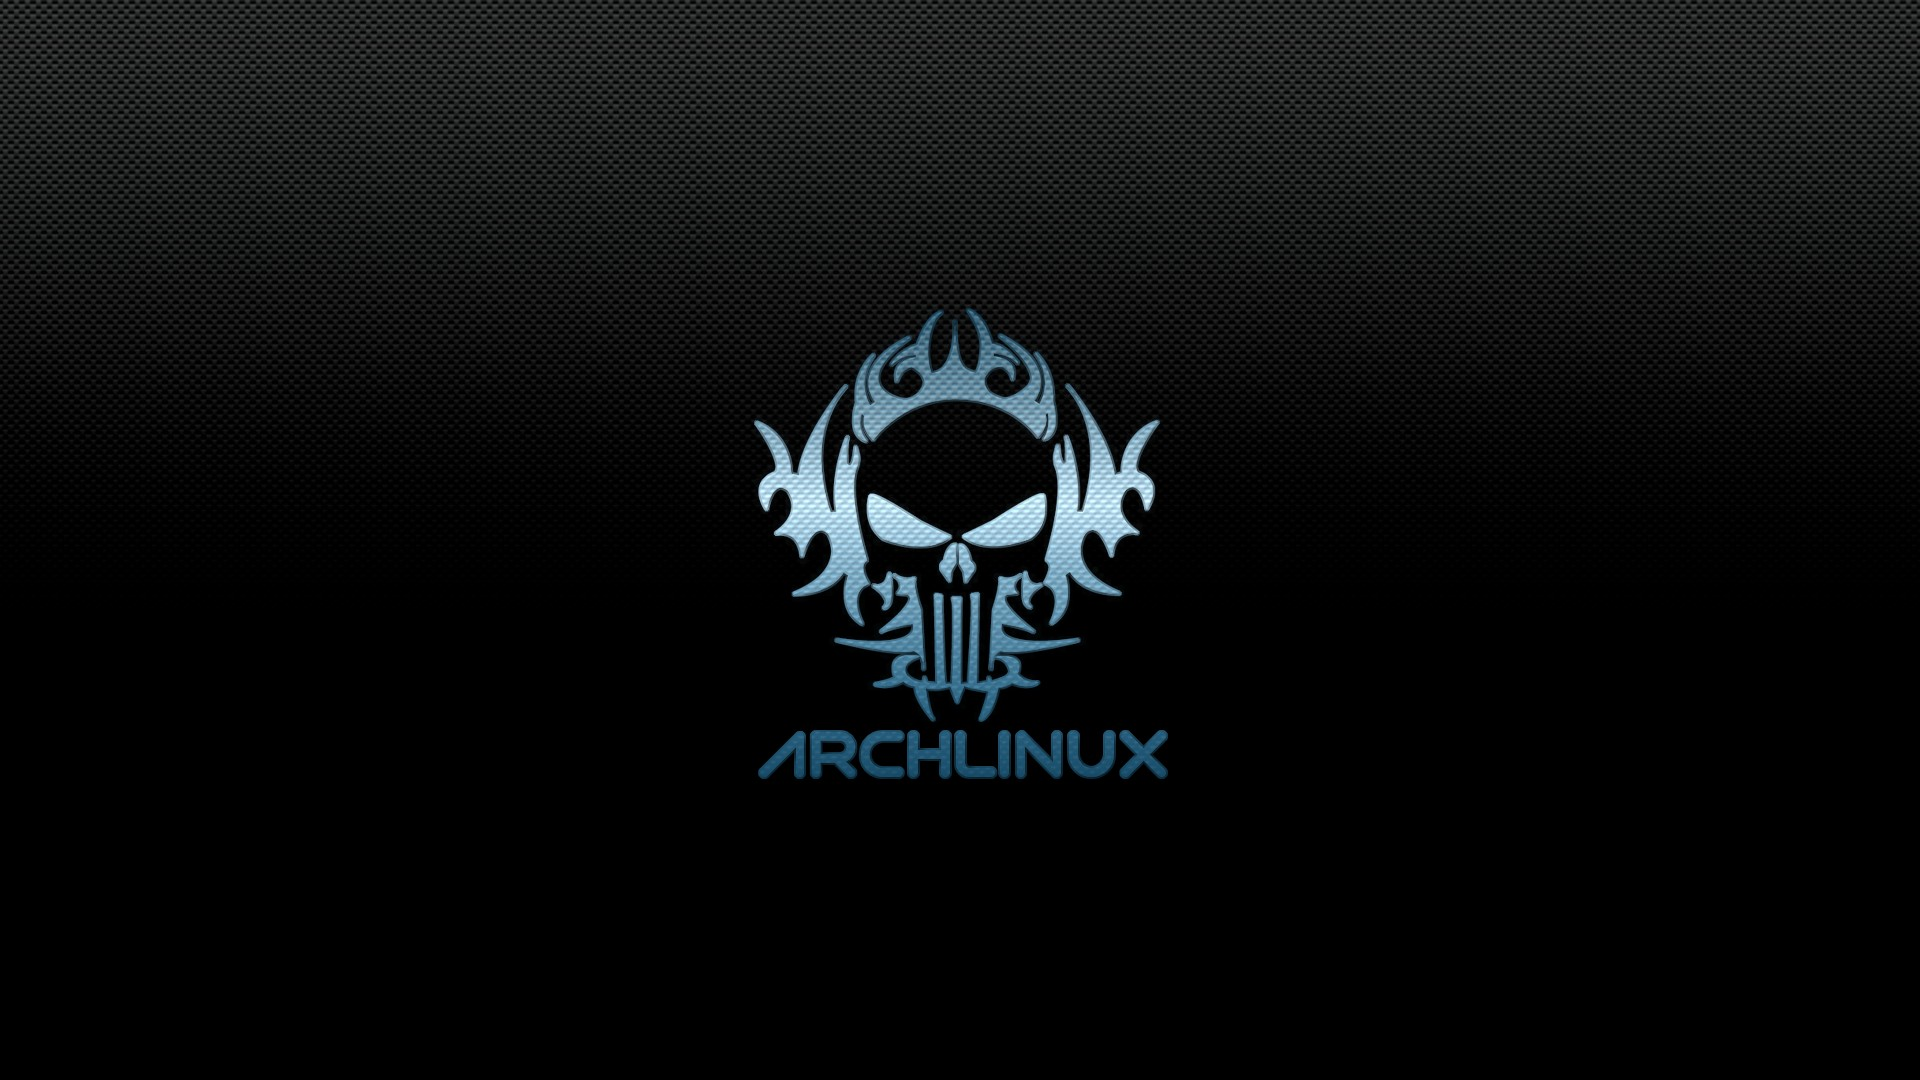 47+] Black Arch Linux Wallpaper on WallpaperSafari